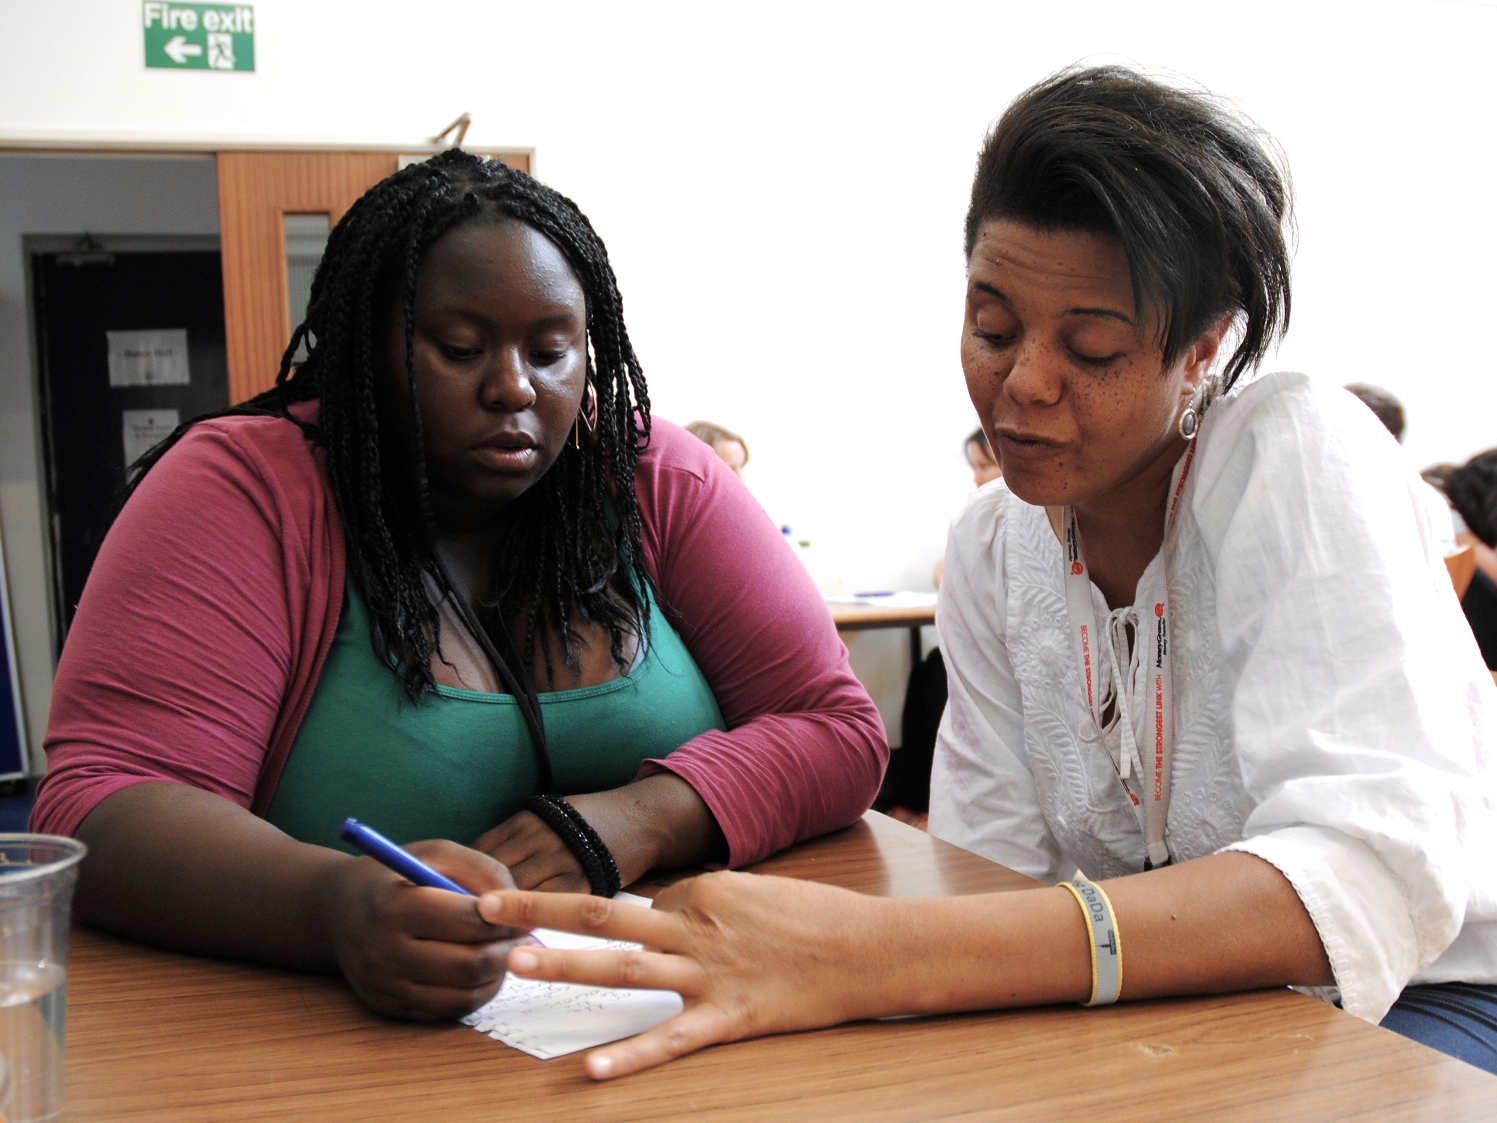 Two young women sit engrossed at a desk, the support worker is taking notes as the participant describes an idea